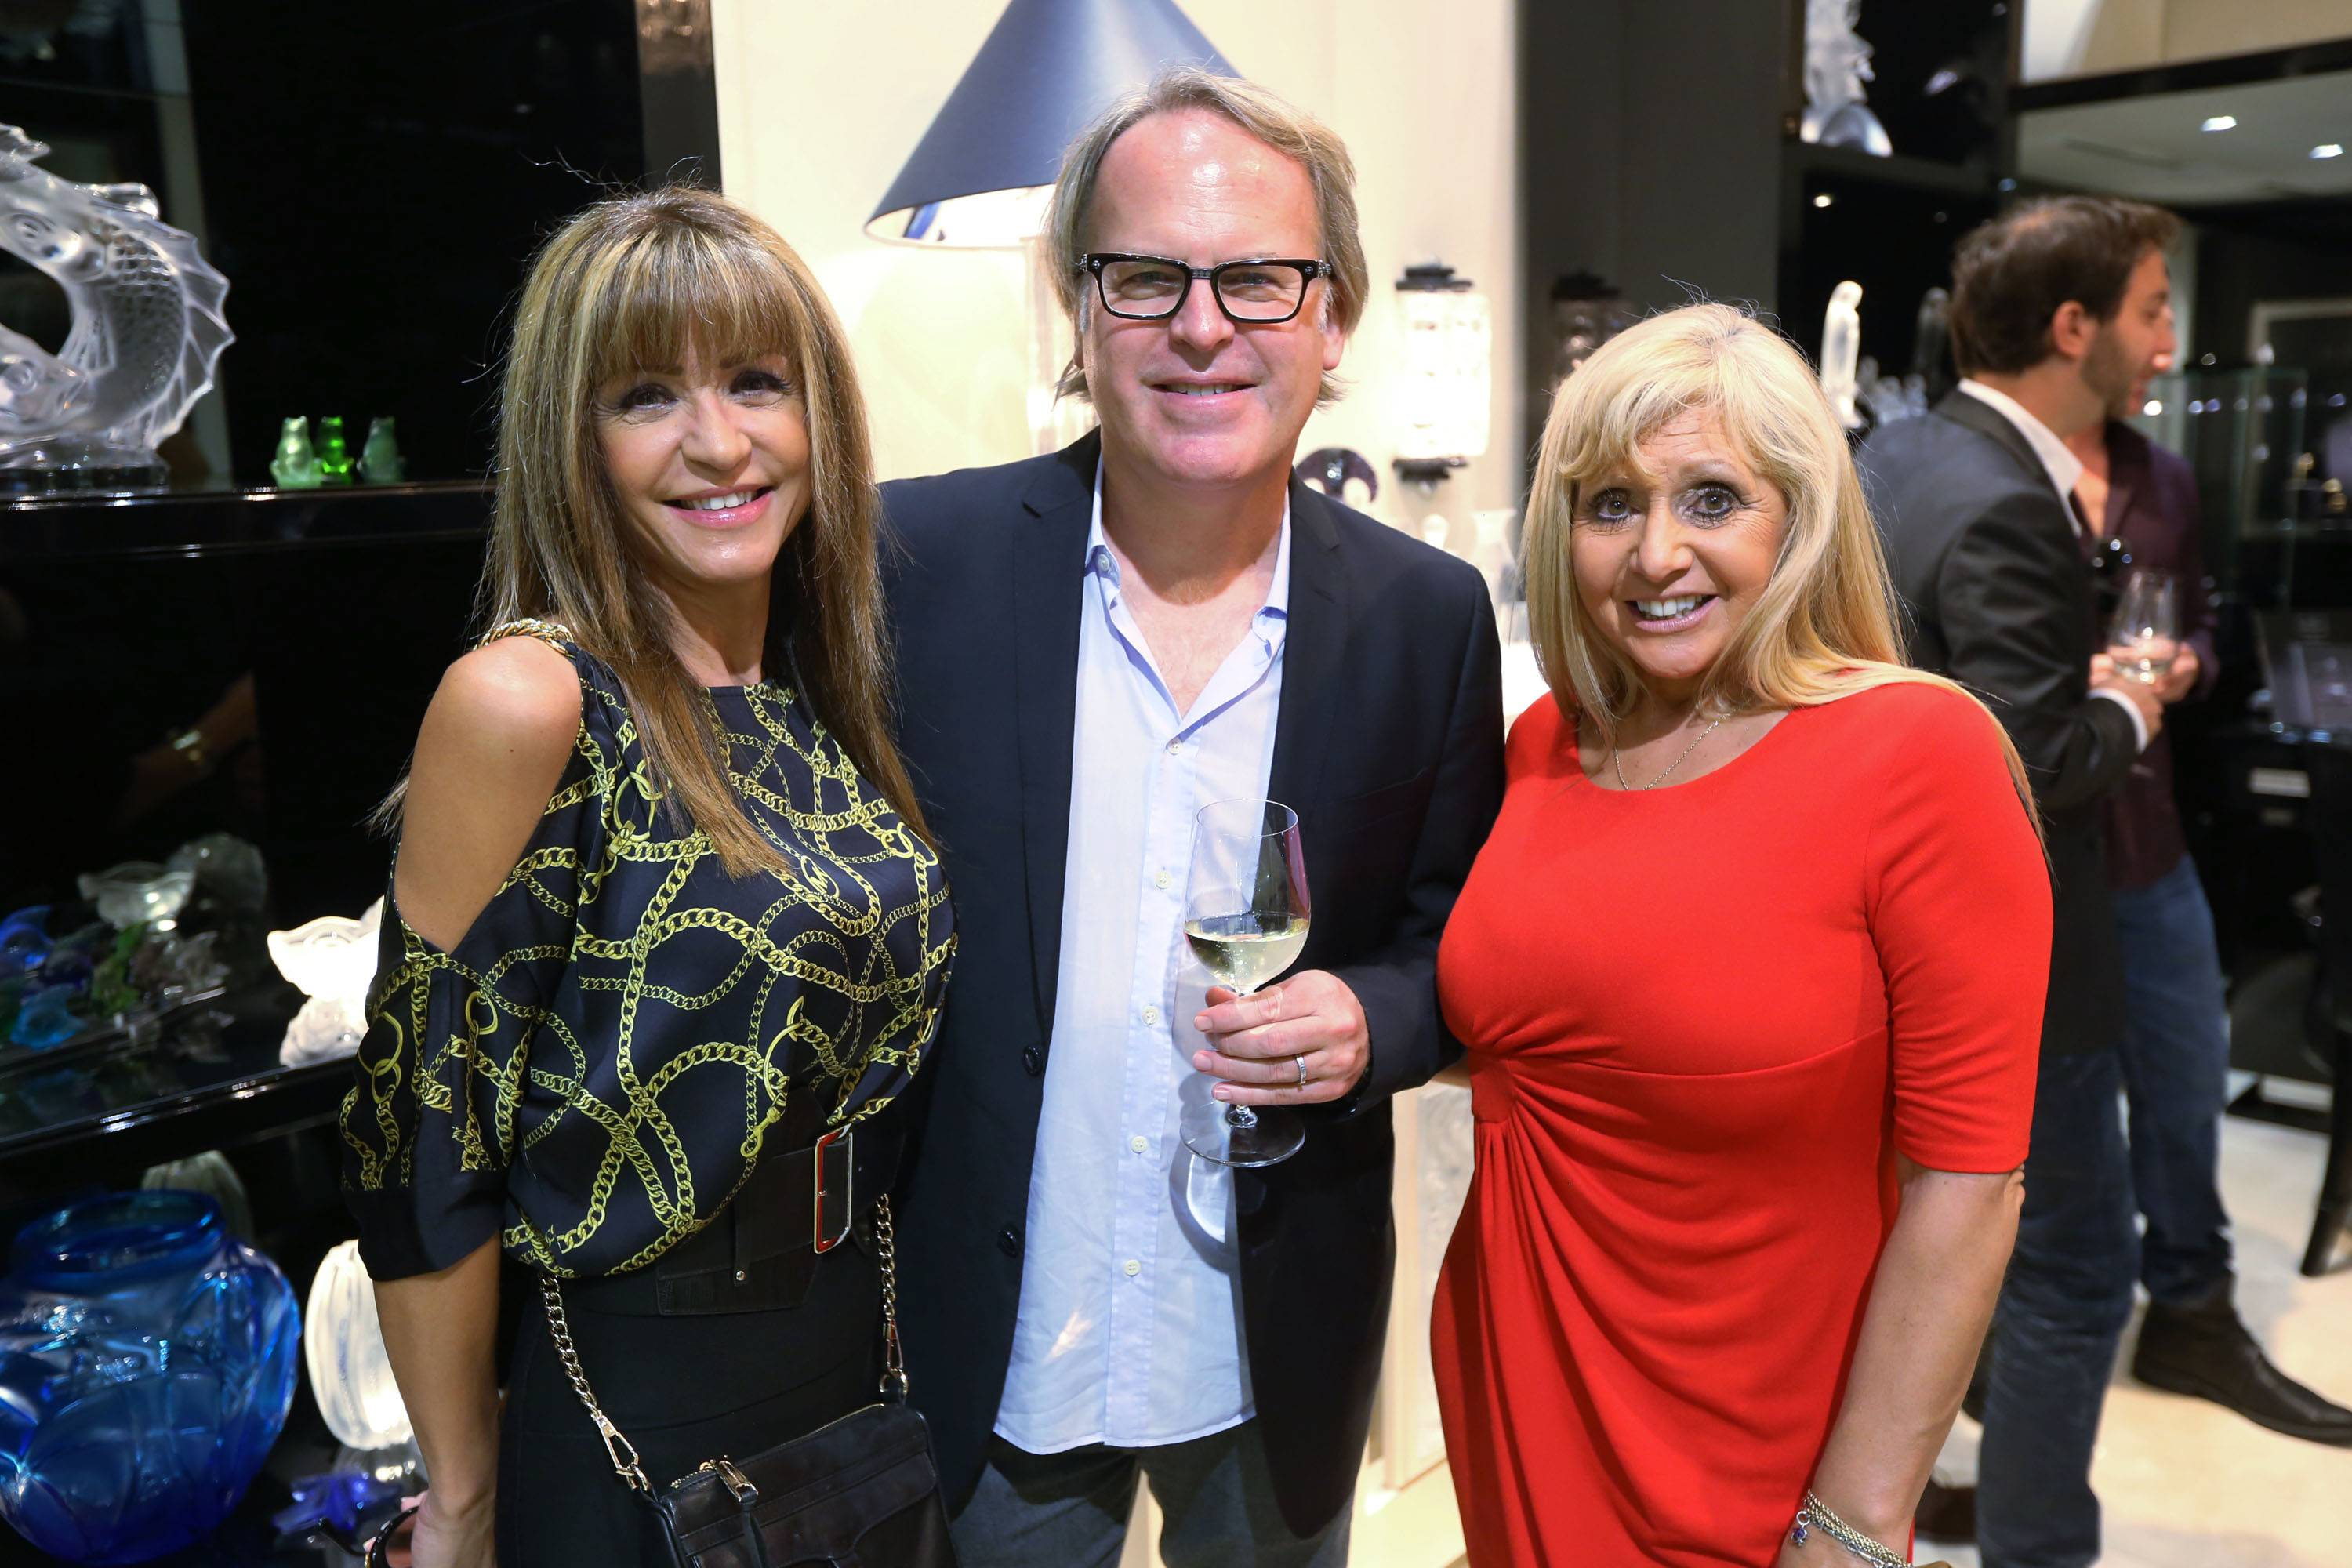 Christina Balinotti, James Suckling, & Olga Betancourt